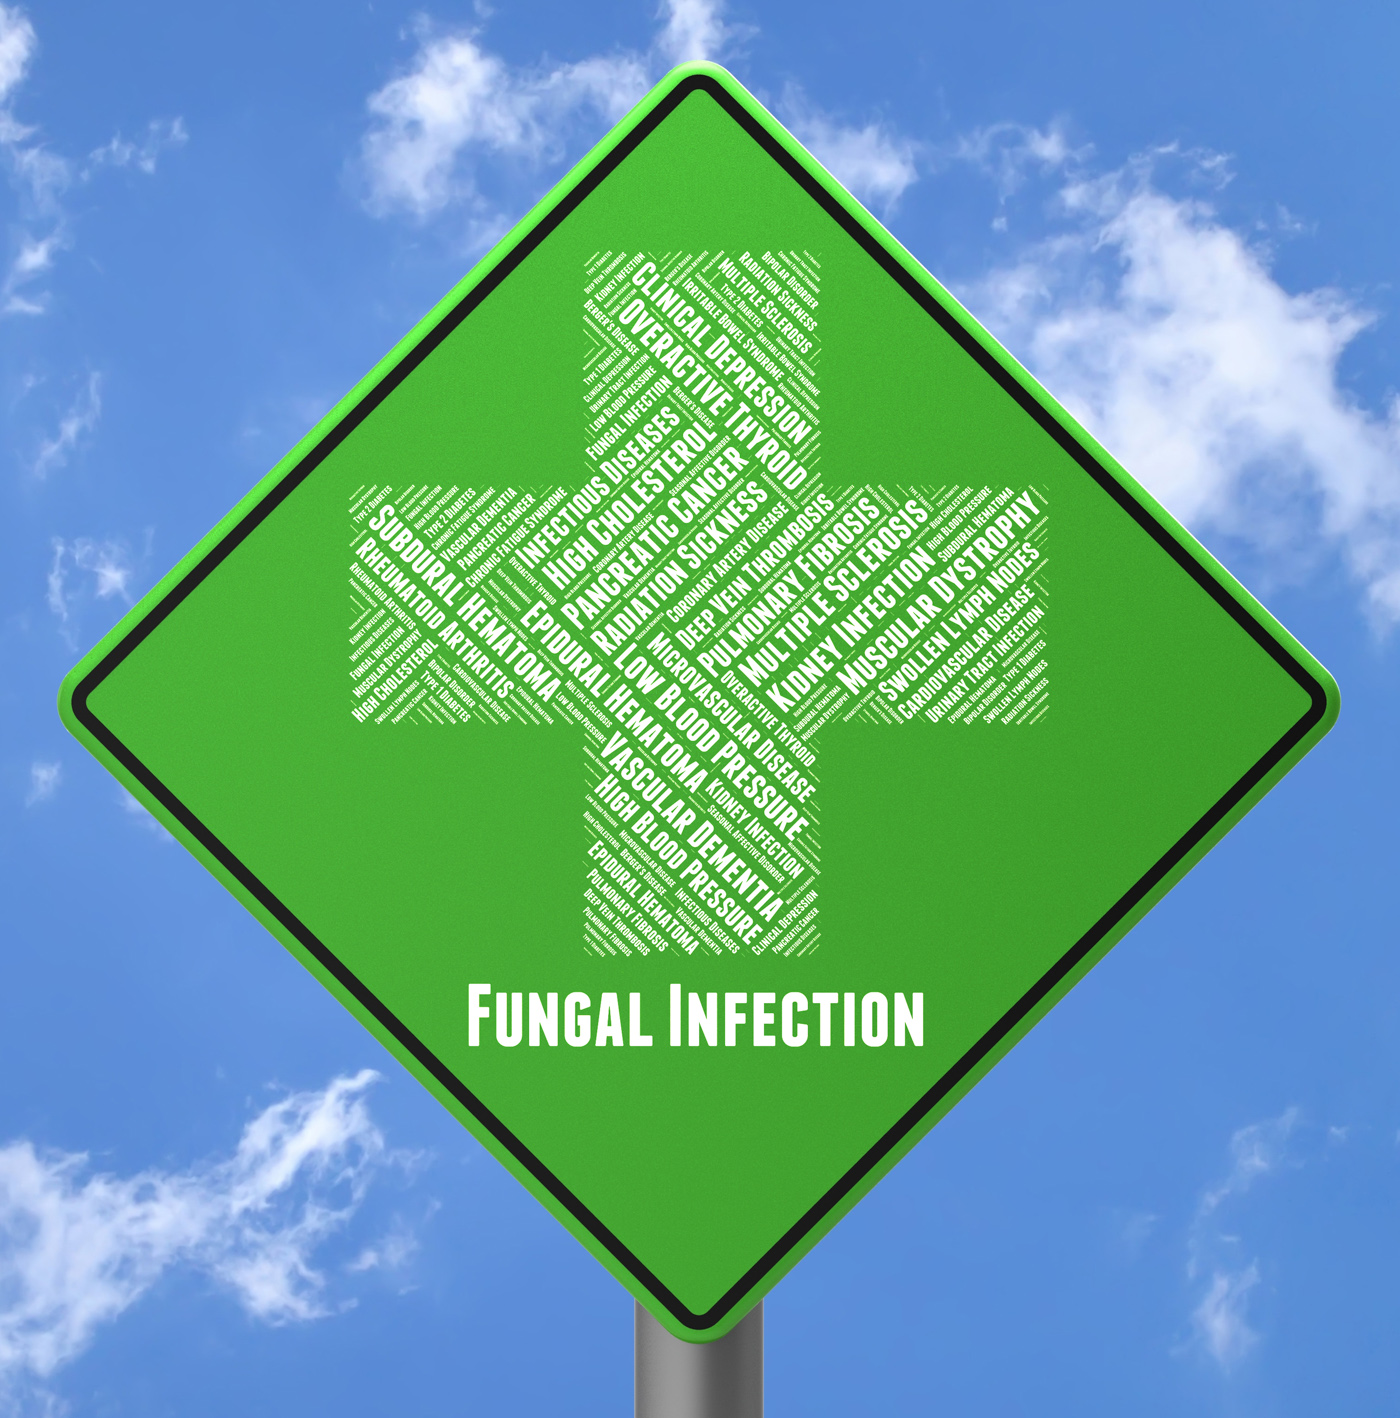 Fungal Infection Shows Poor Health And Afflictions, Advertisement, Infectious, Indisposition, Infect, HQ Photo